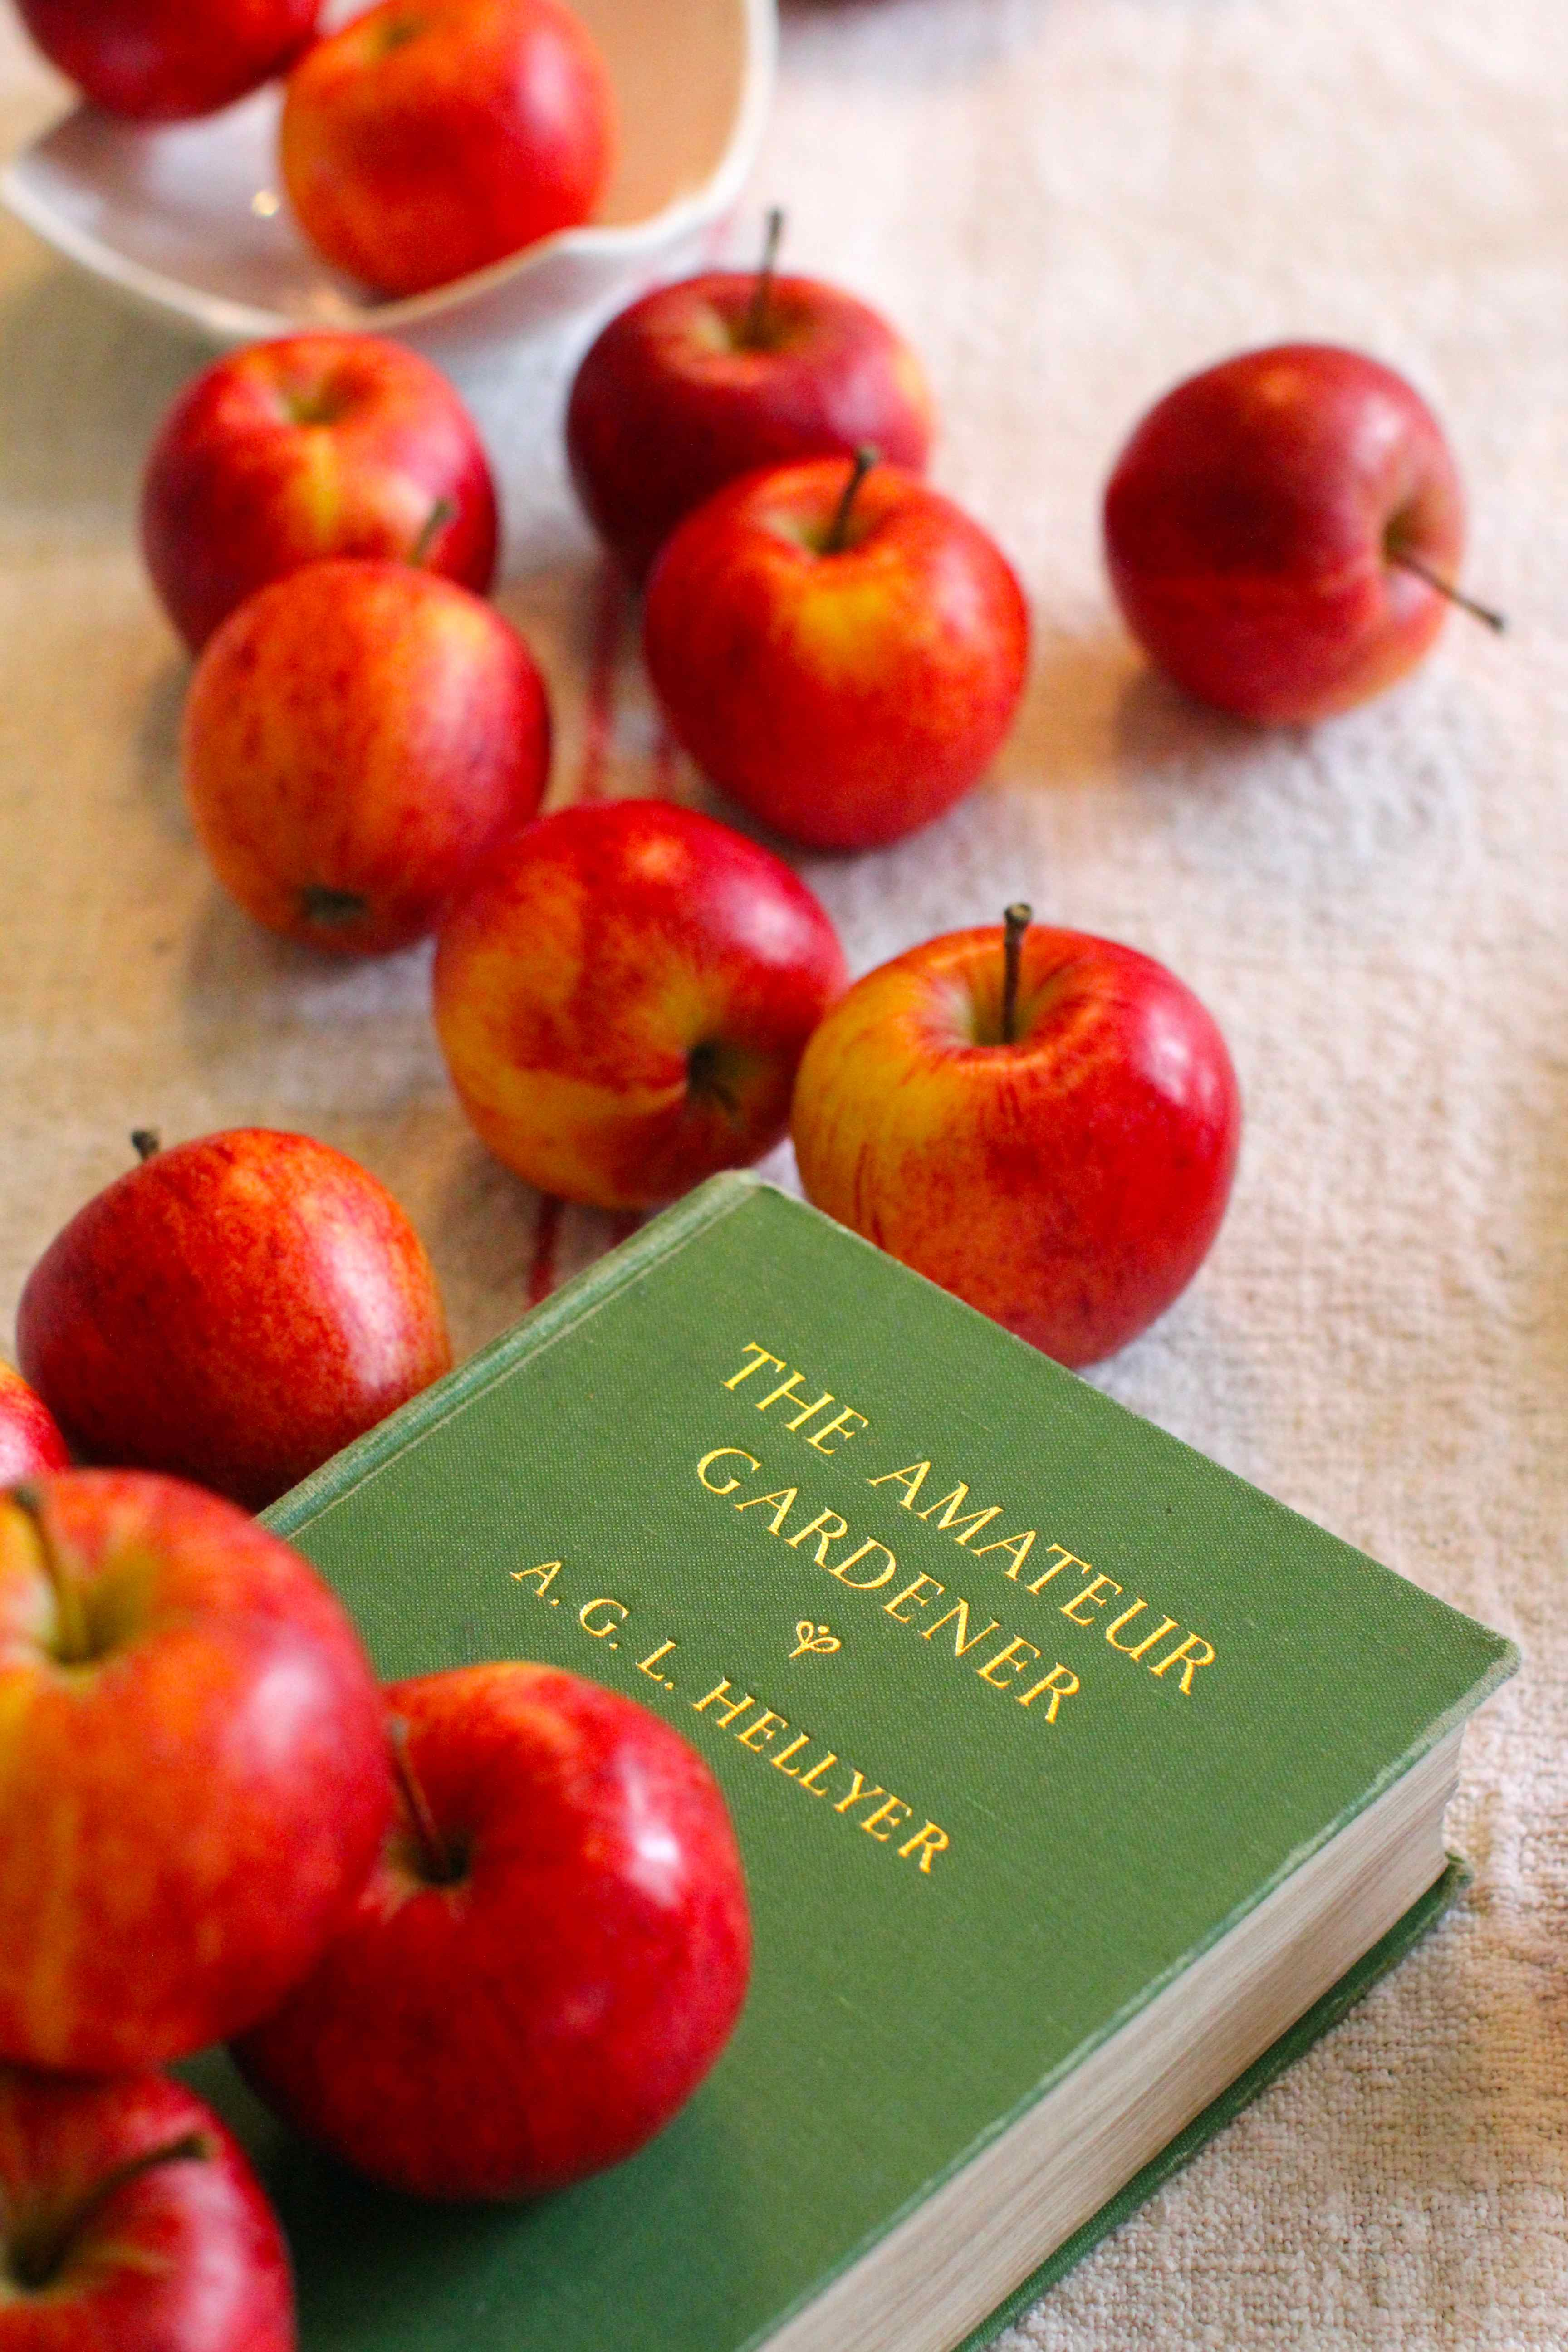 One Hundred And Twelve Red Apples